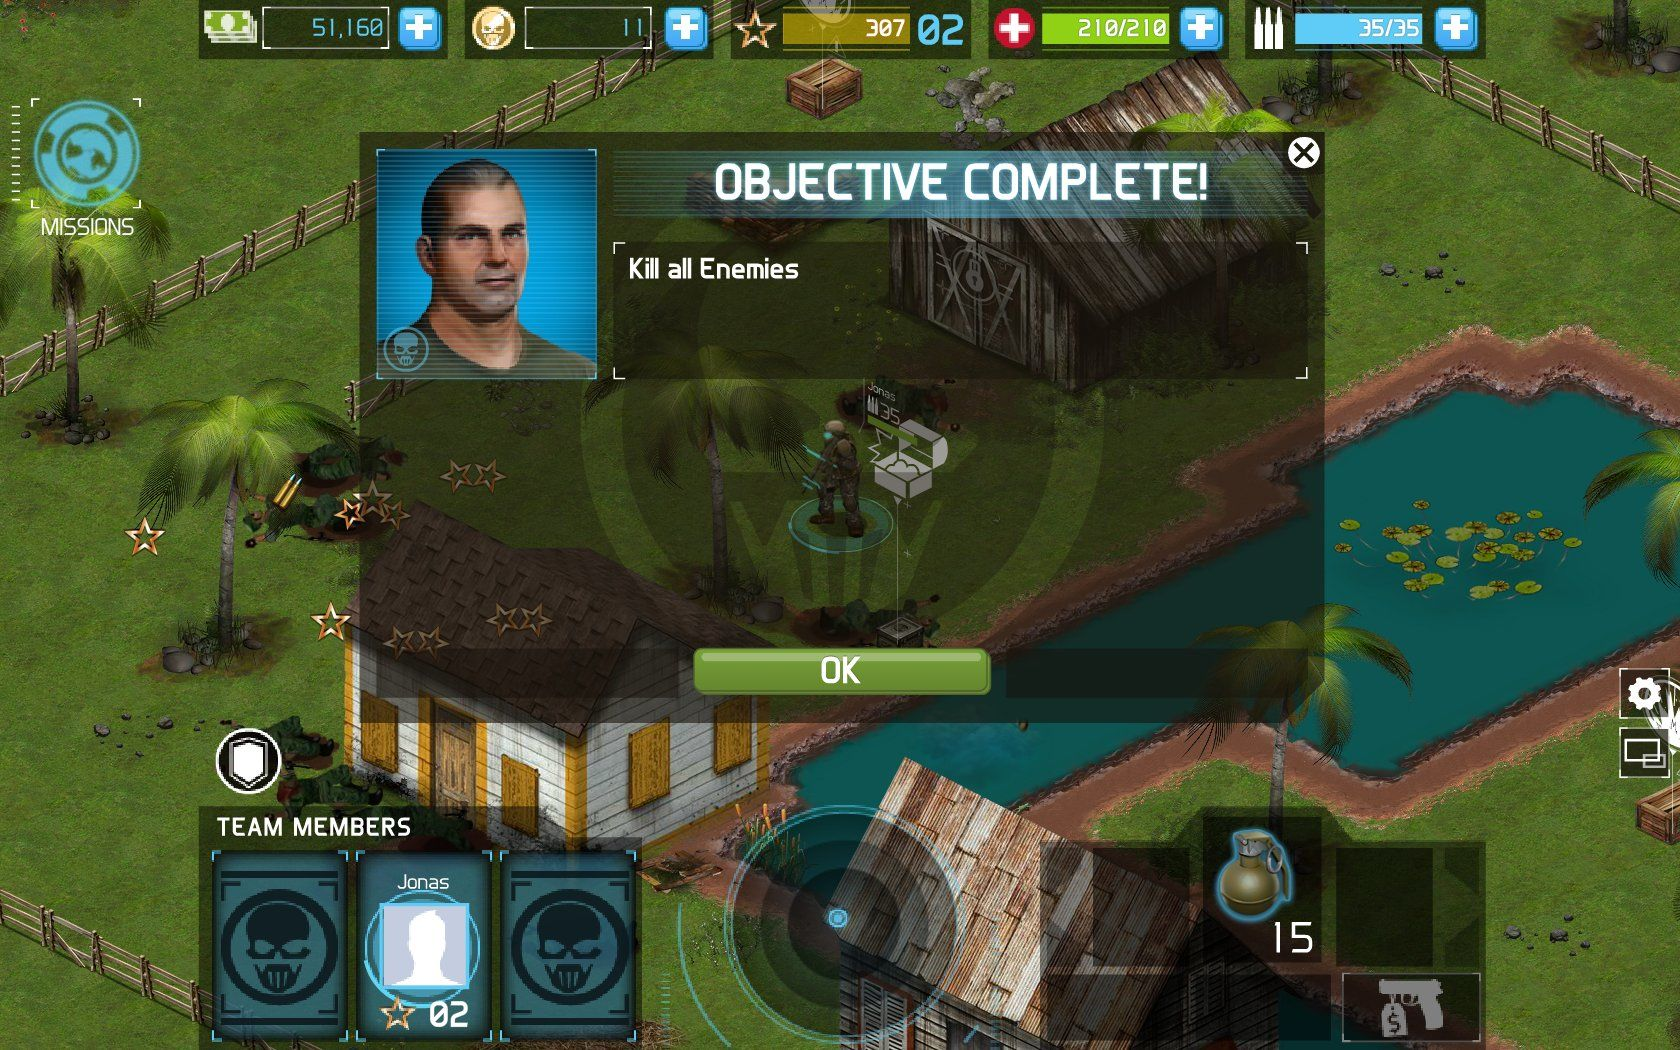 Tom Clancy's Ghost Recon: Commander Browser Objective complete